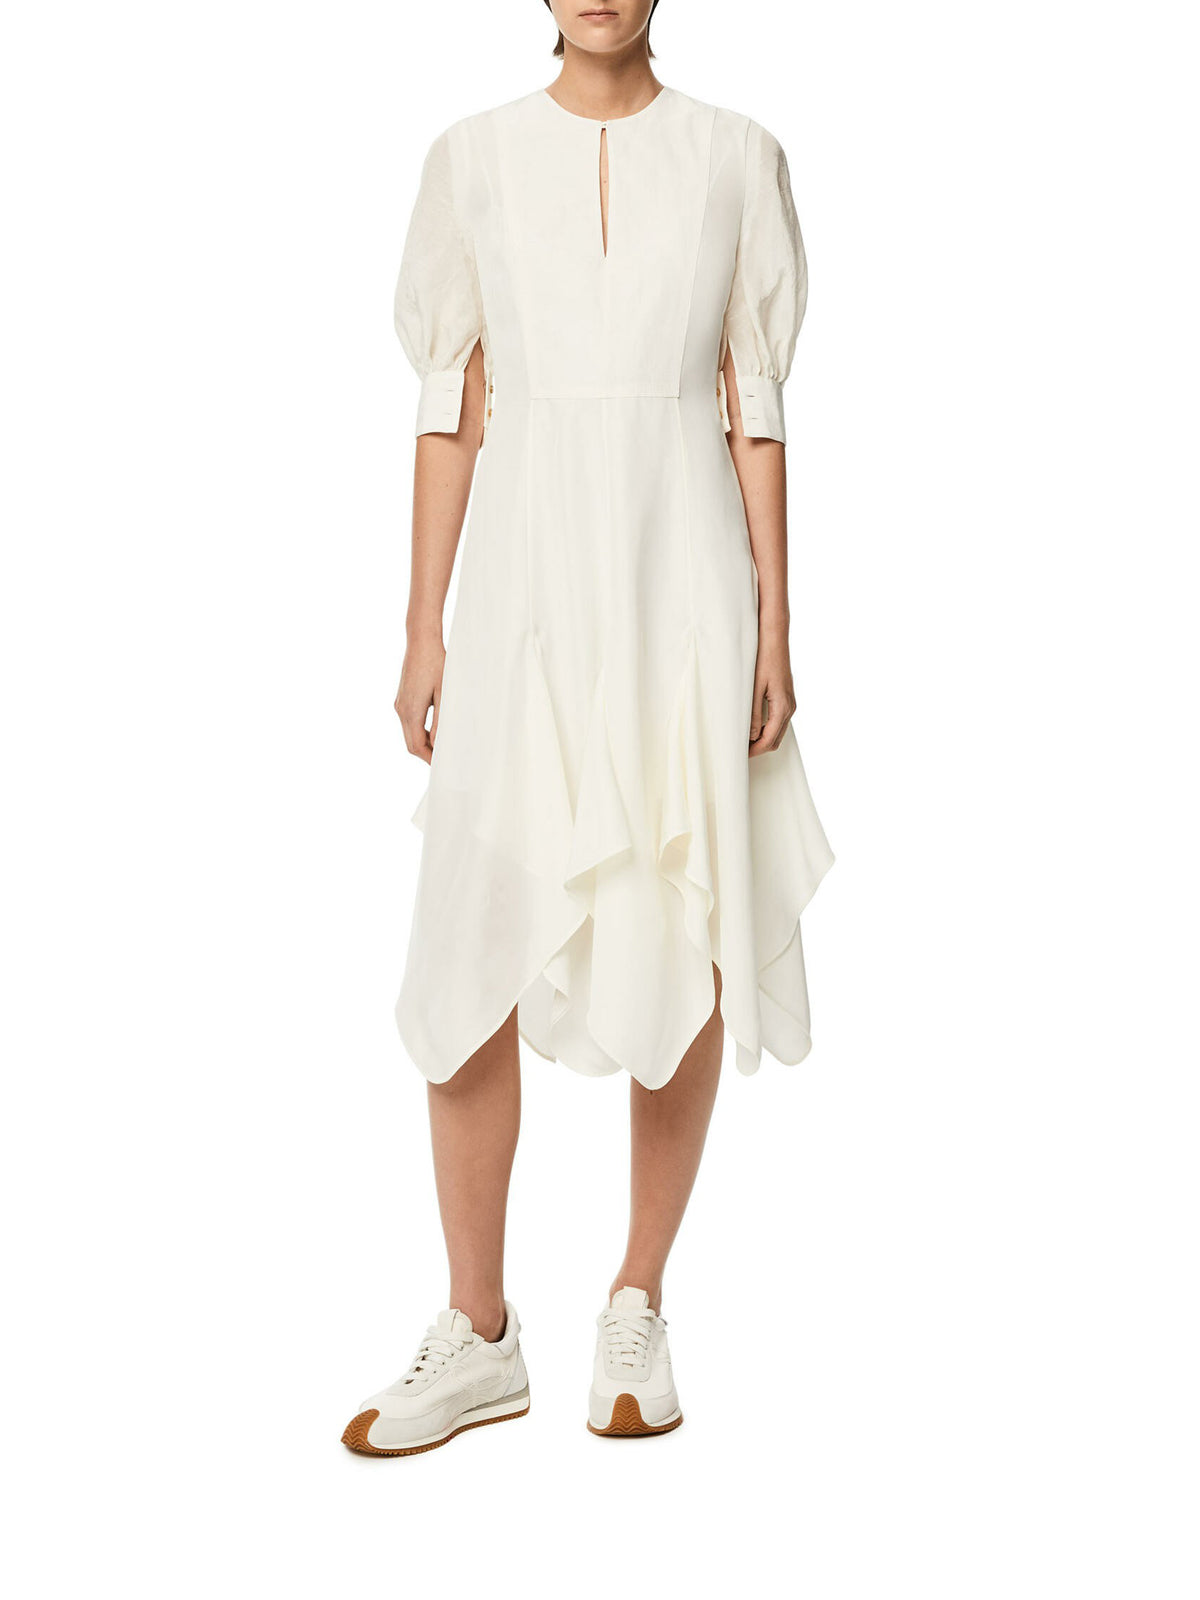 Petal hem dress in linen